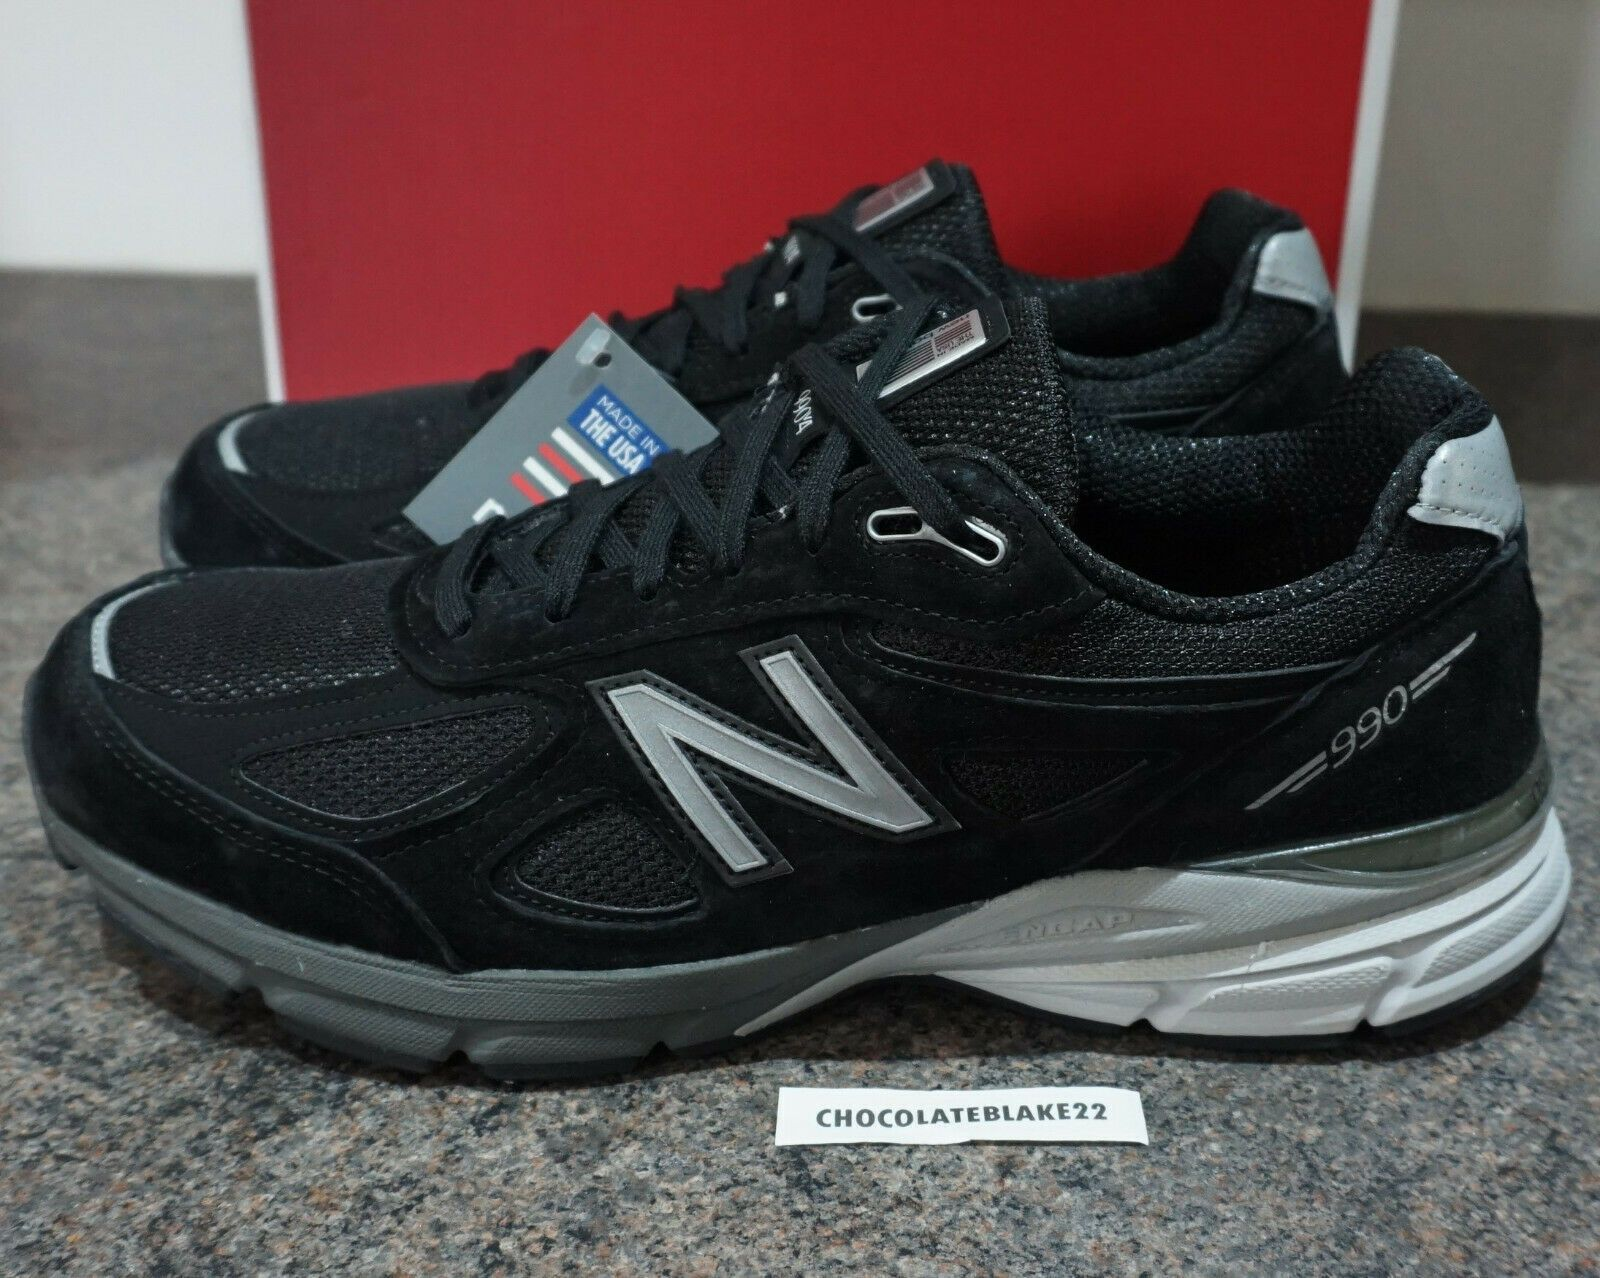 10769cdd969 Details about New Balance M998TCA UK 9 990 991 998 Made In the USA ...